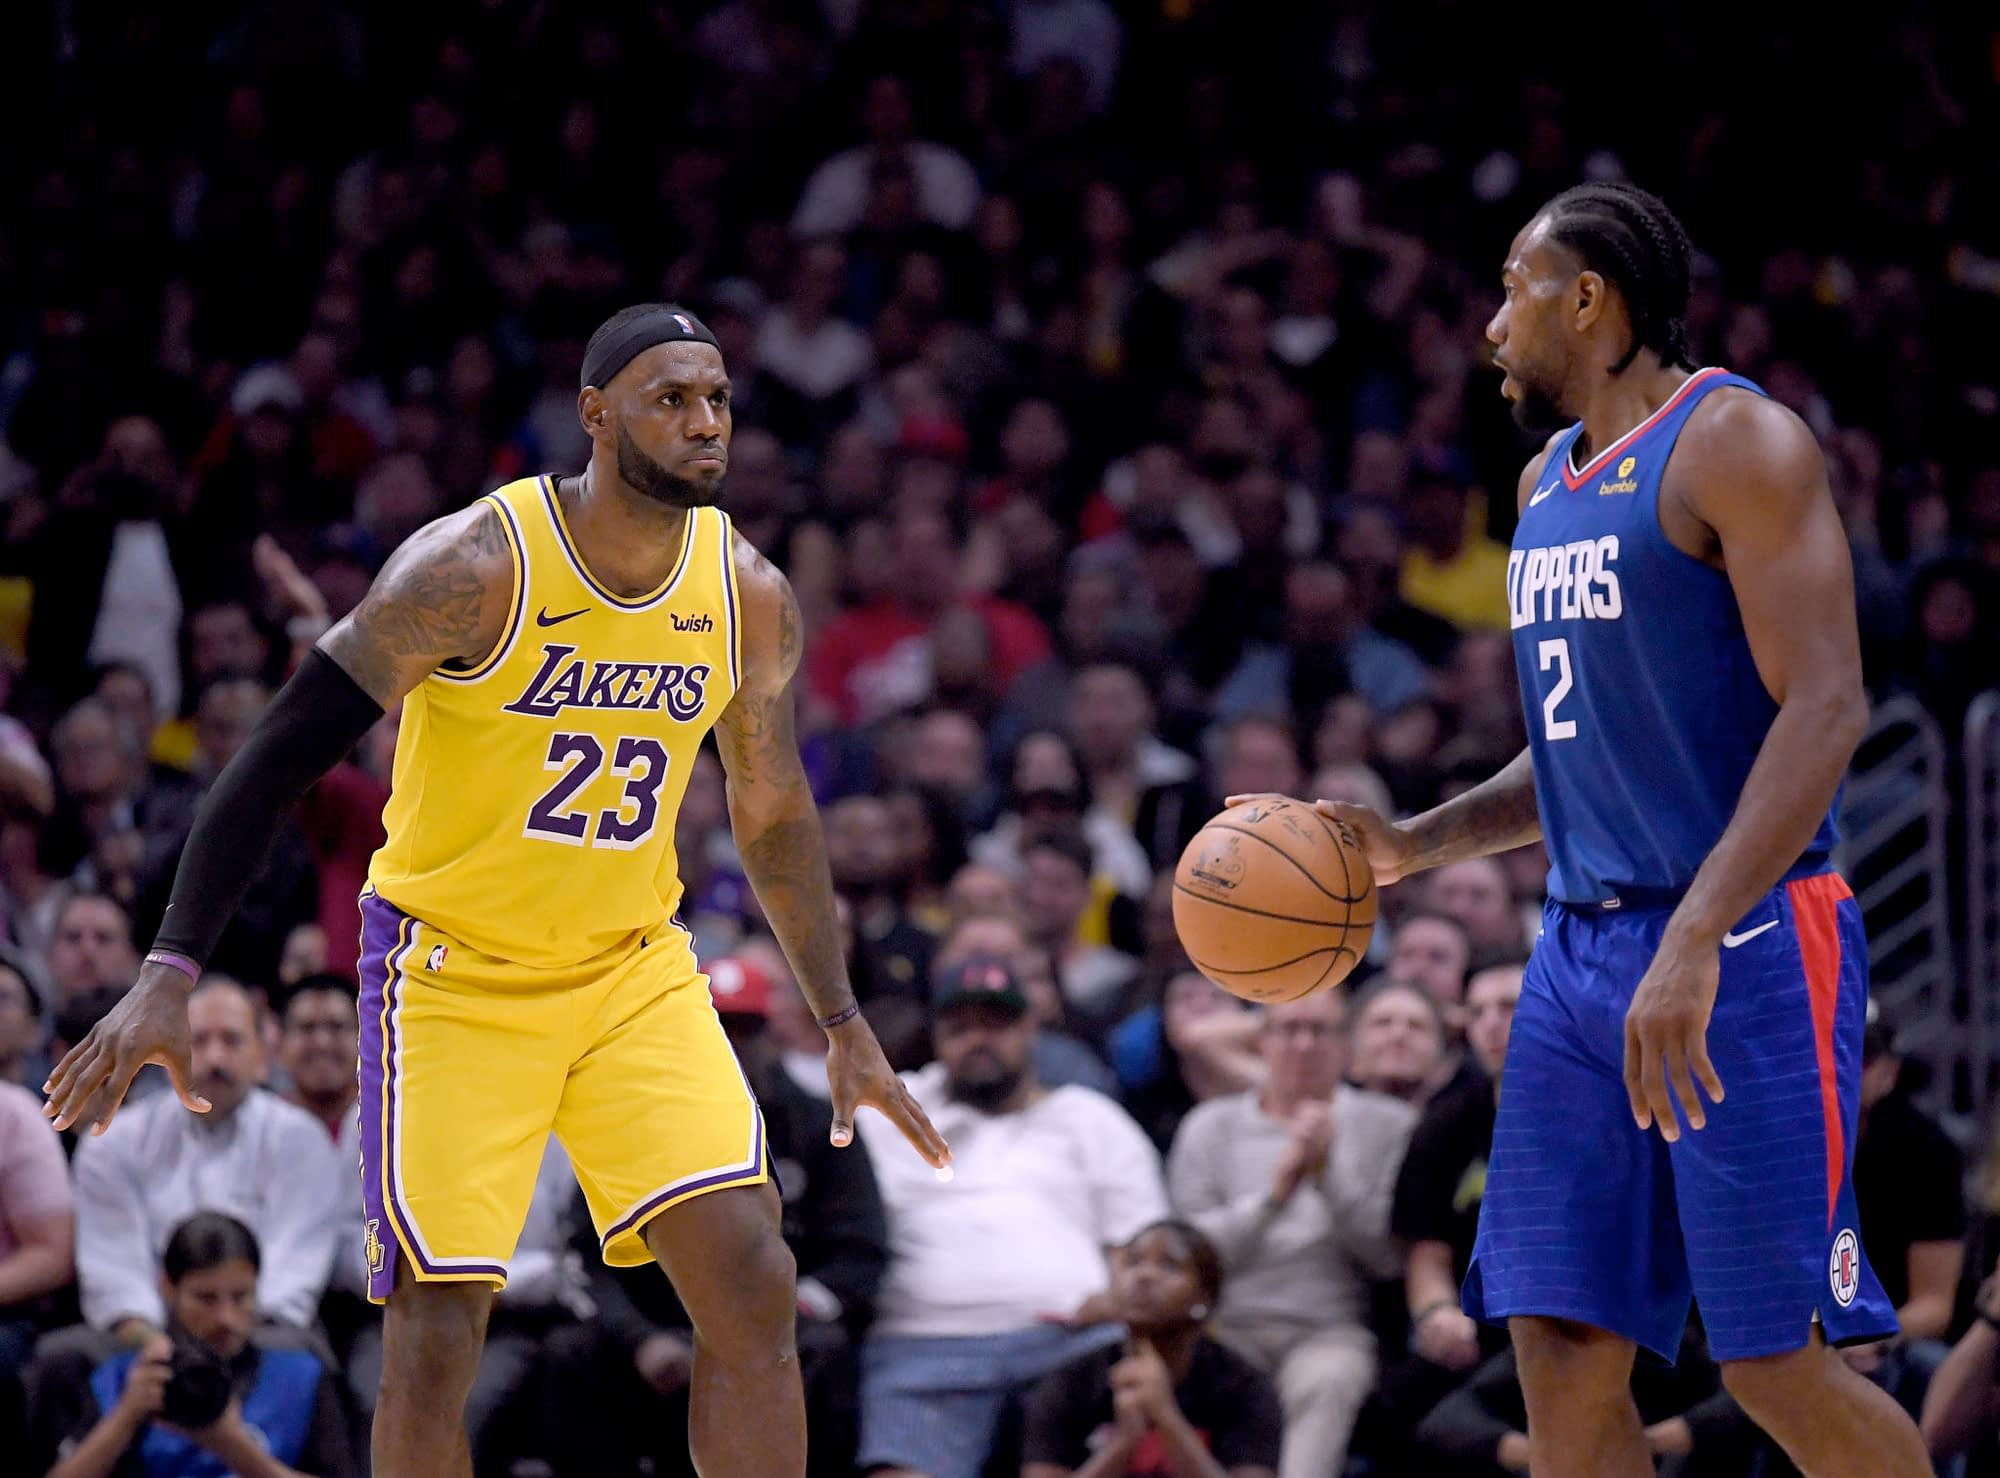 Kawhi Leonard faces off against LeBron James